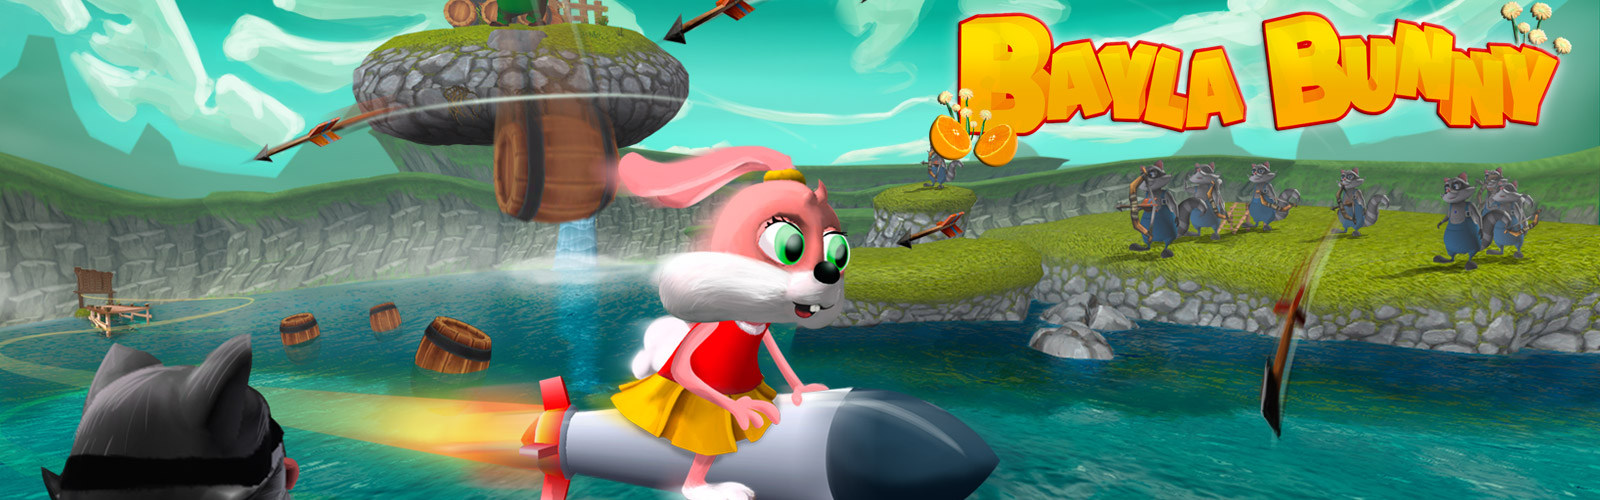 Bayla Bunny Steam Key GLOBAL